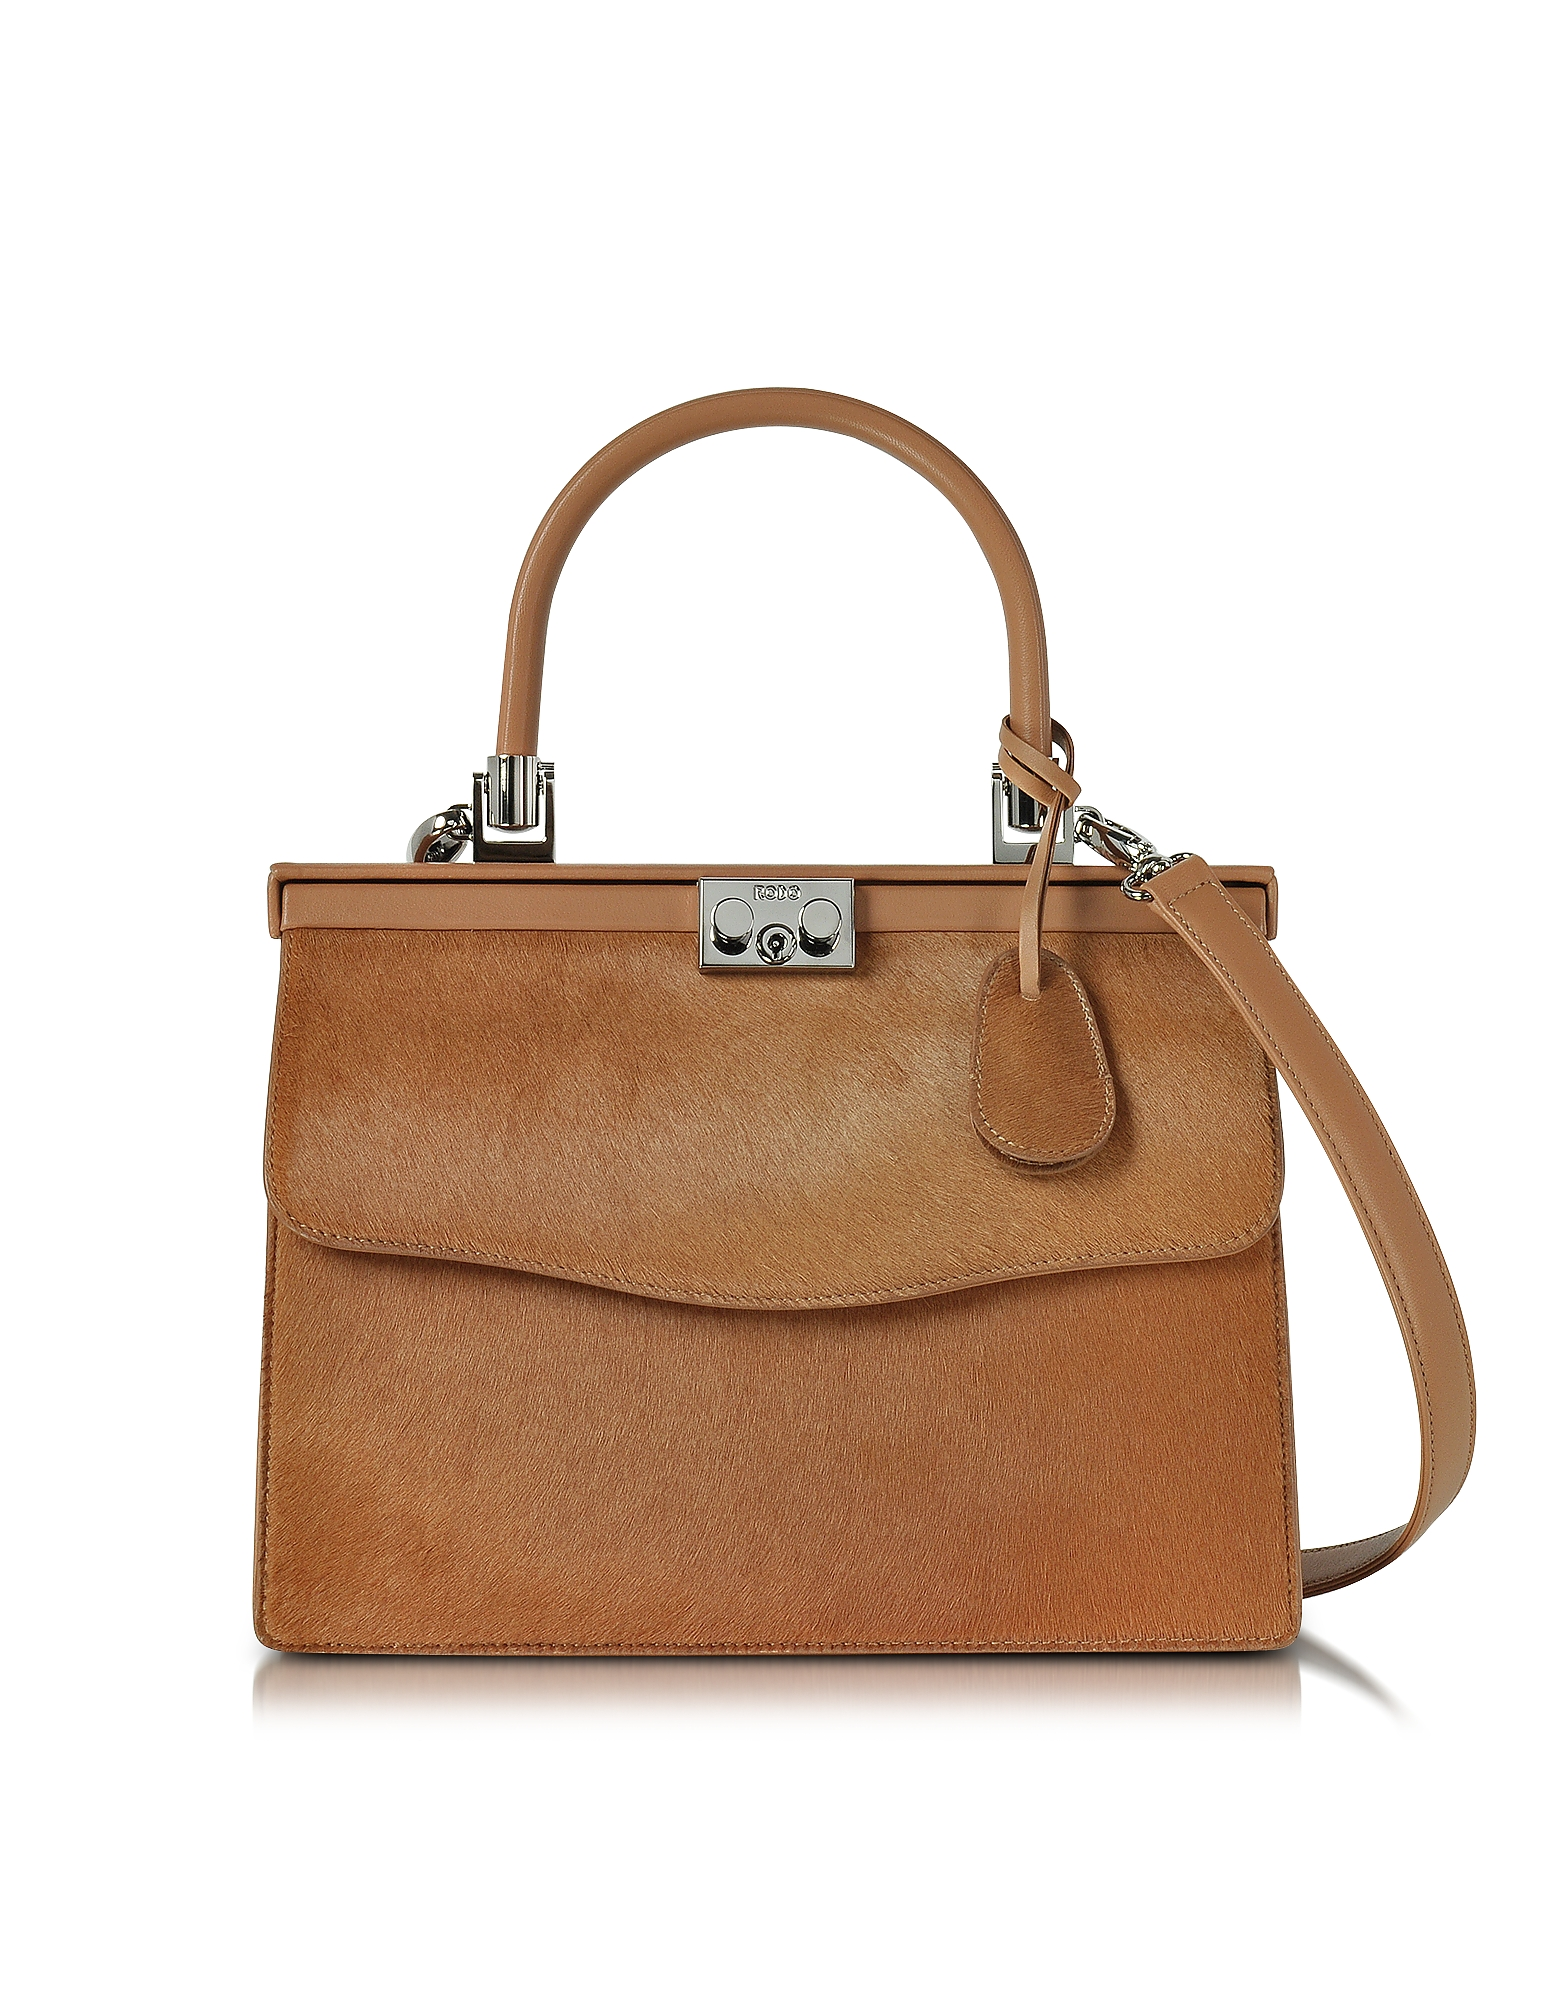 Rodo Handbags, Light Brown Haircalf and Leather Top Handle Paris Bag